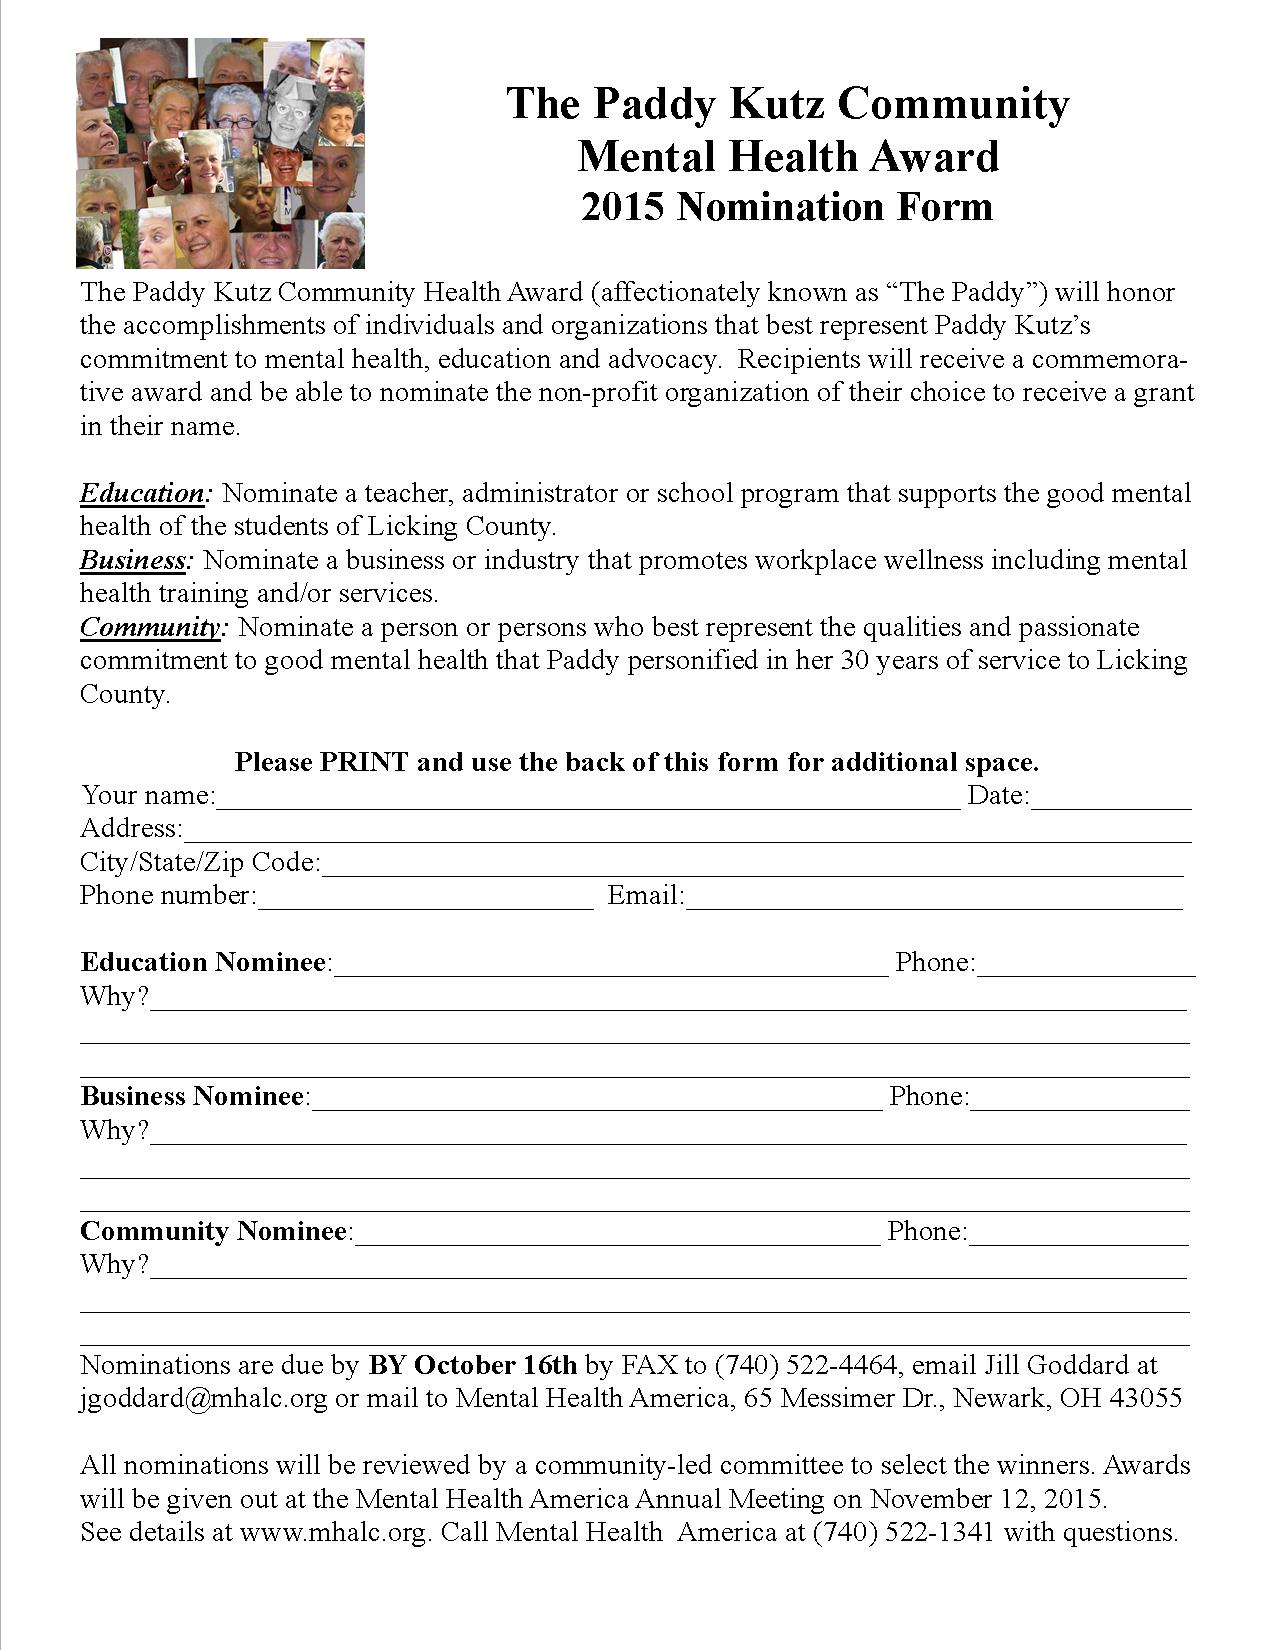 The Paddy Nomination Form 2015